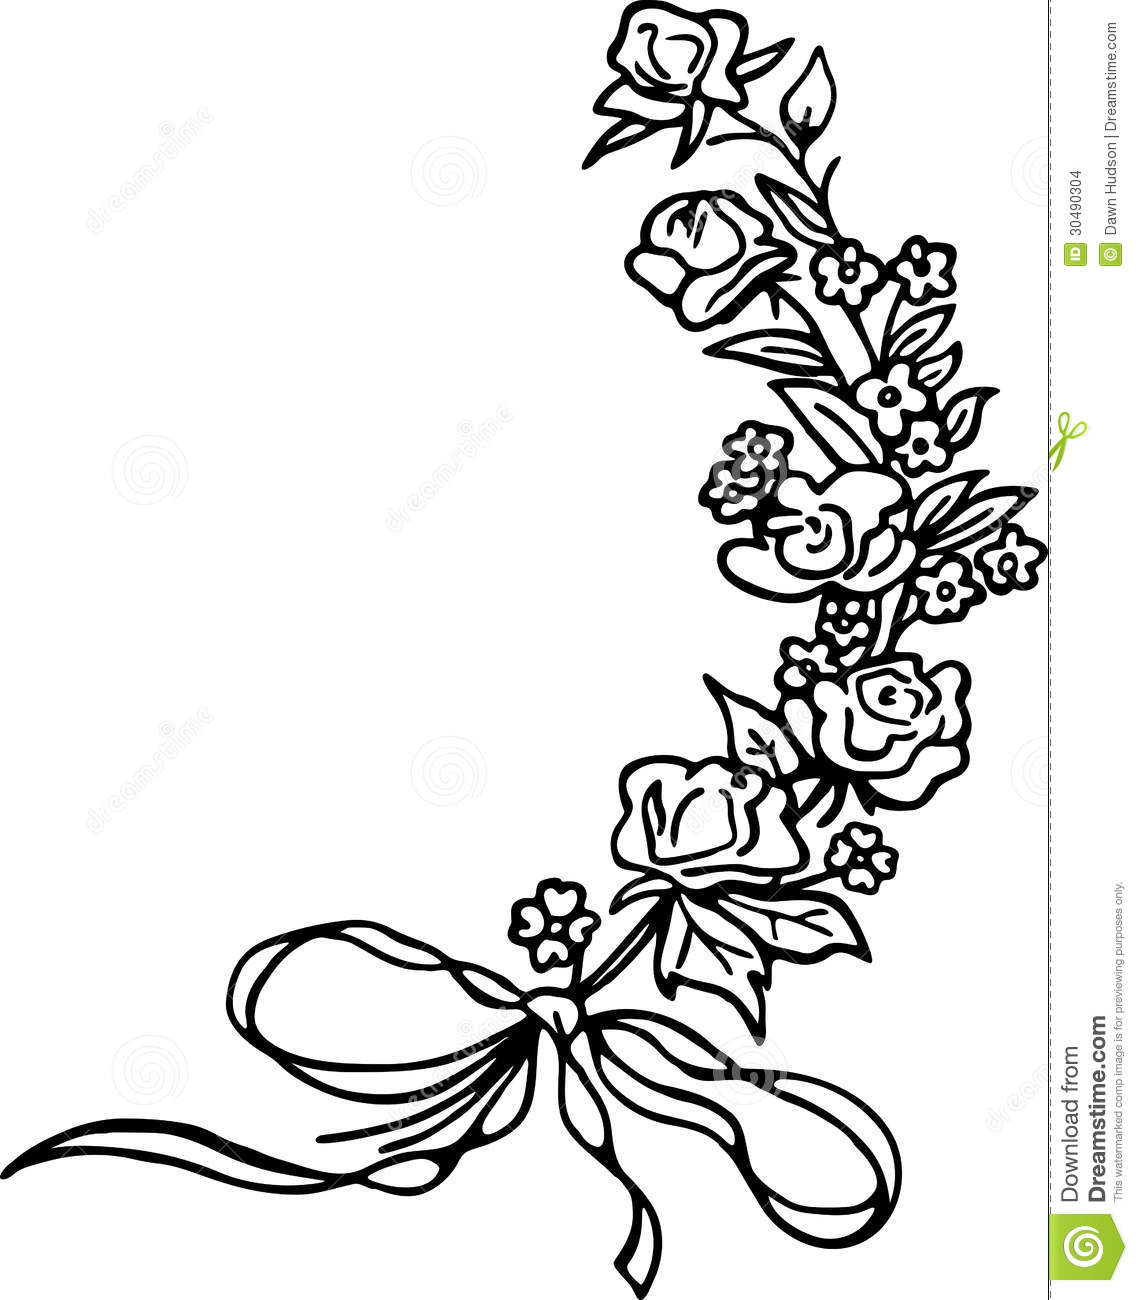 Simple Black And White Line Art : Rose sprig stock images image